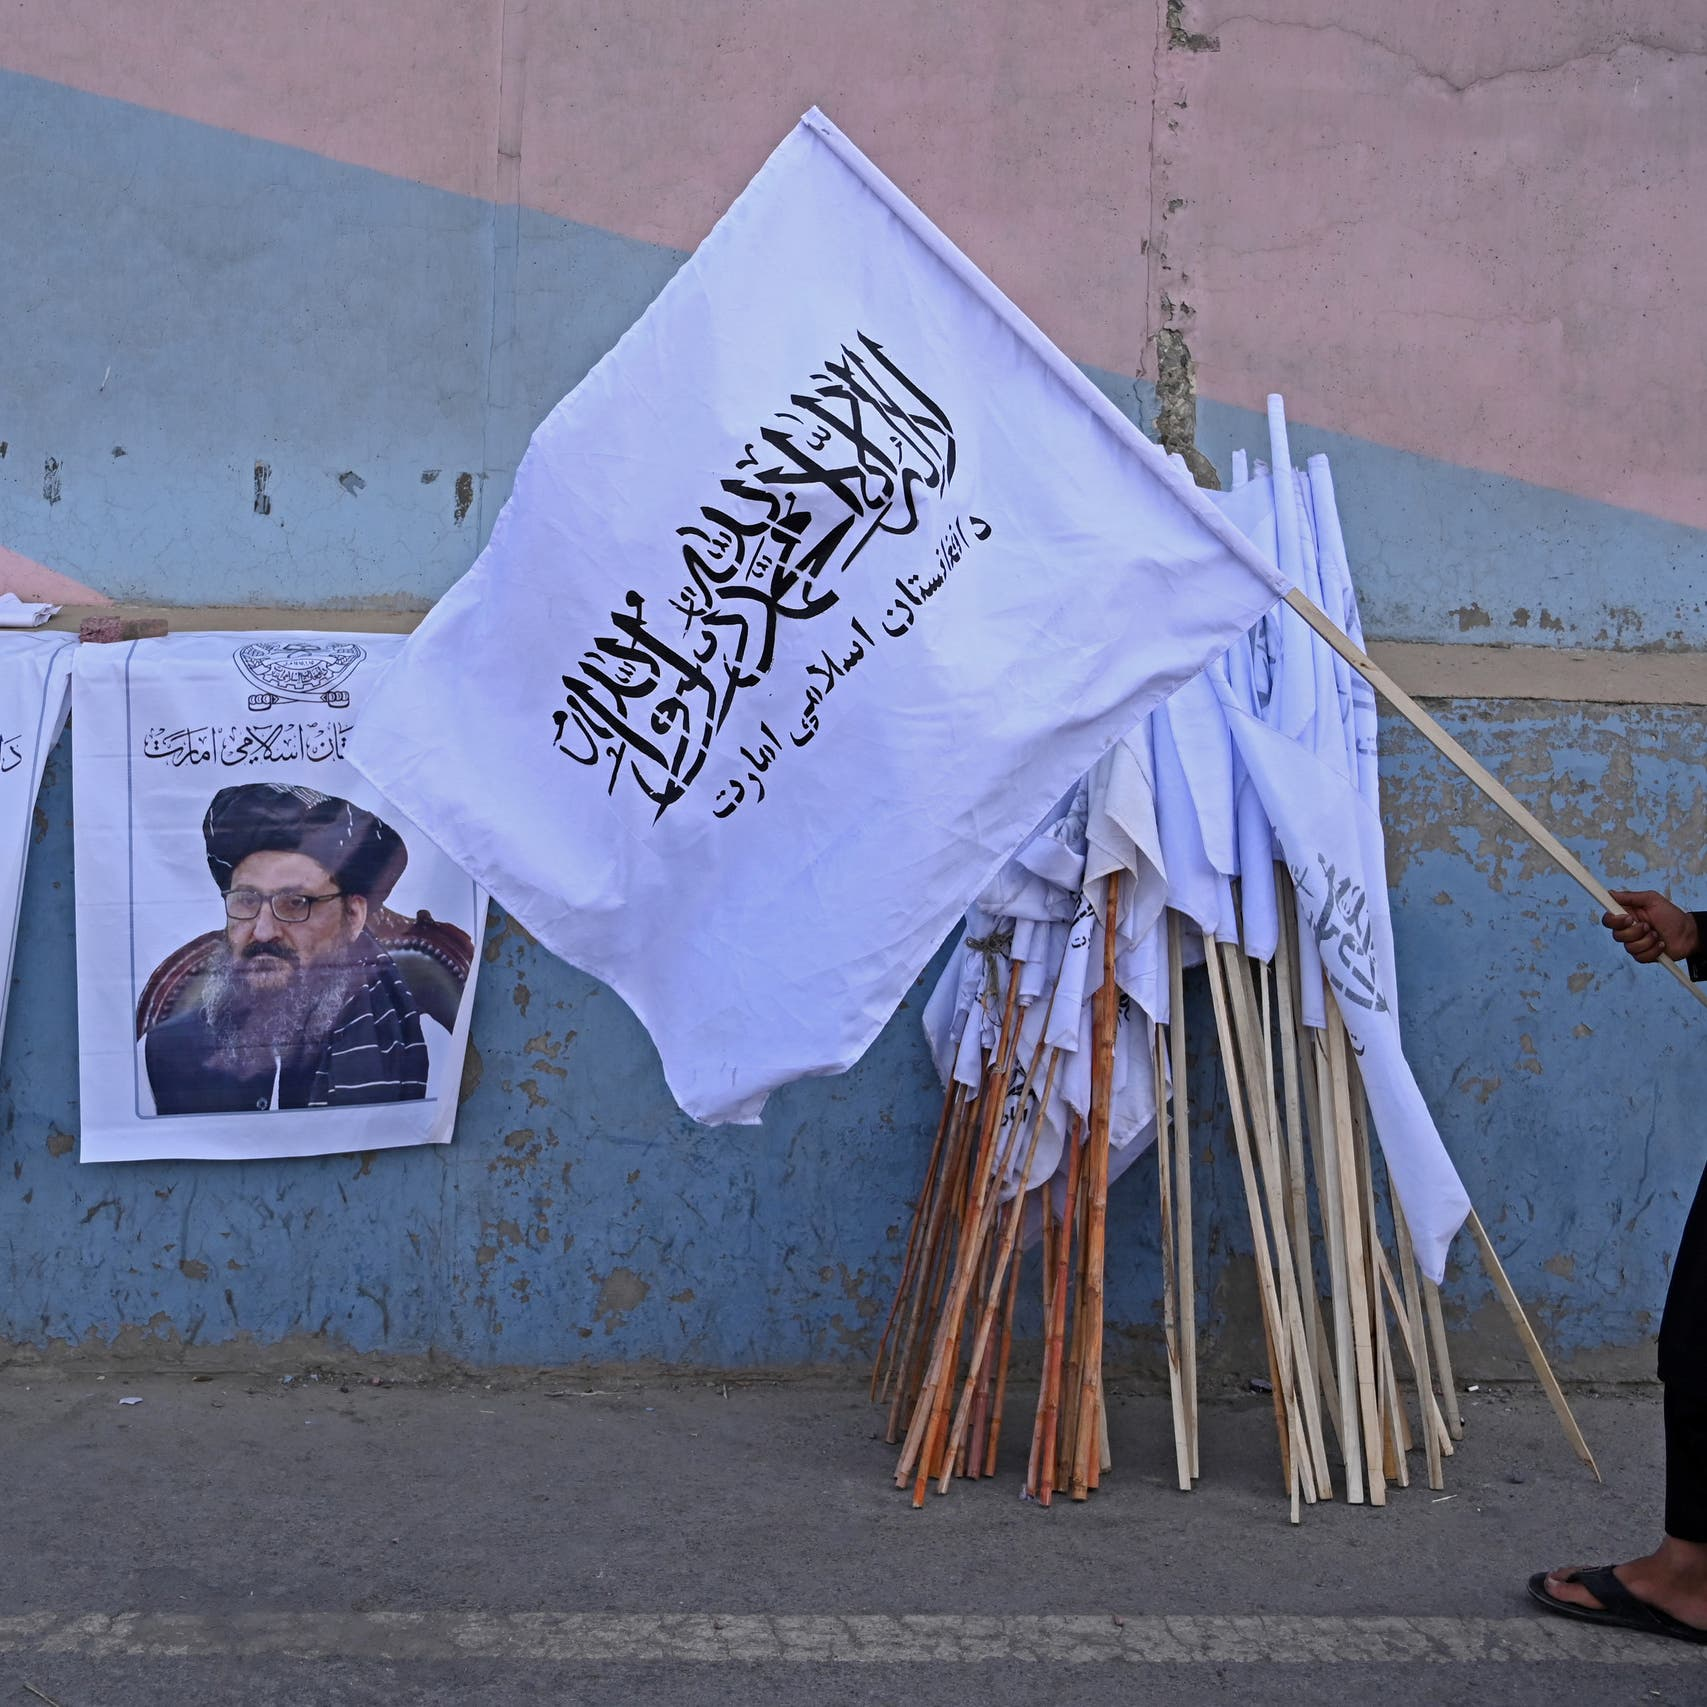 Who are the members of the Taliban new all-male government